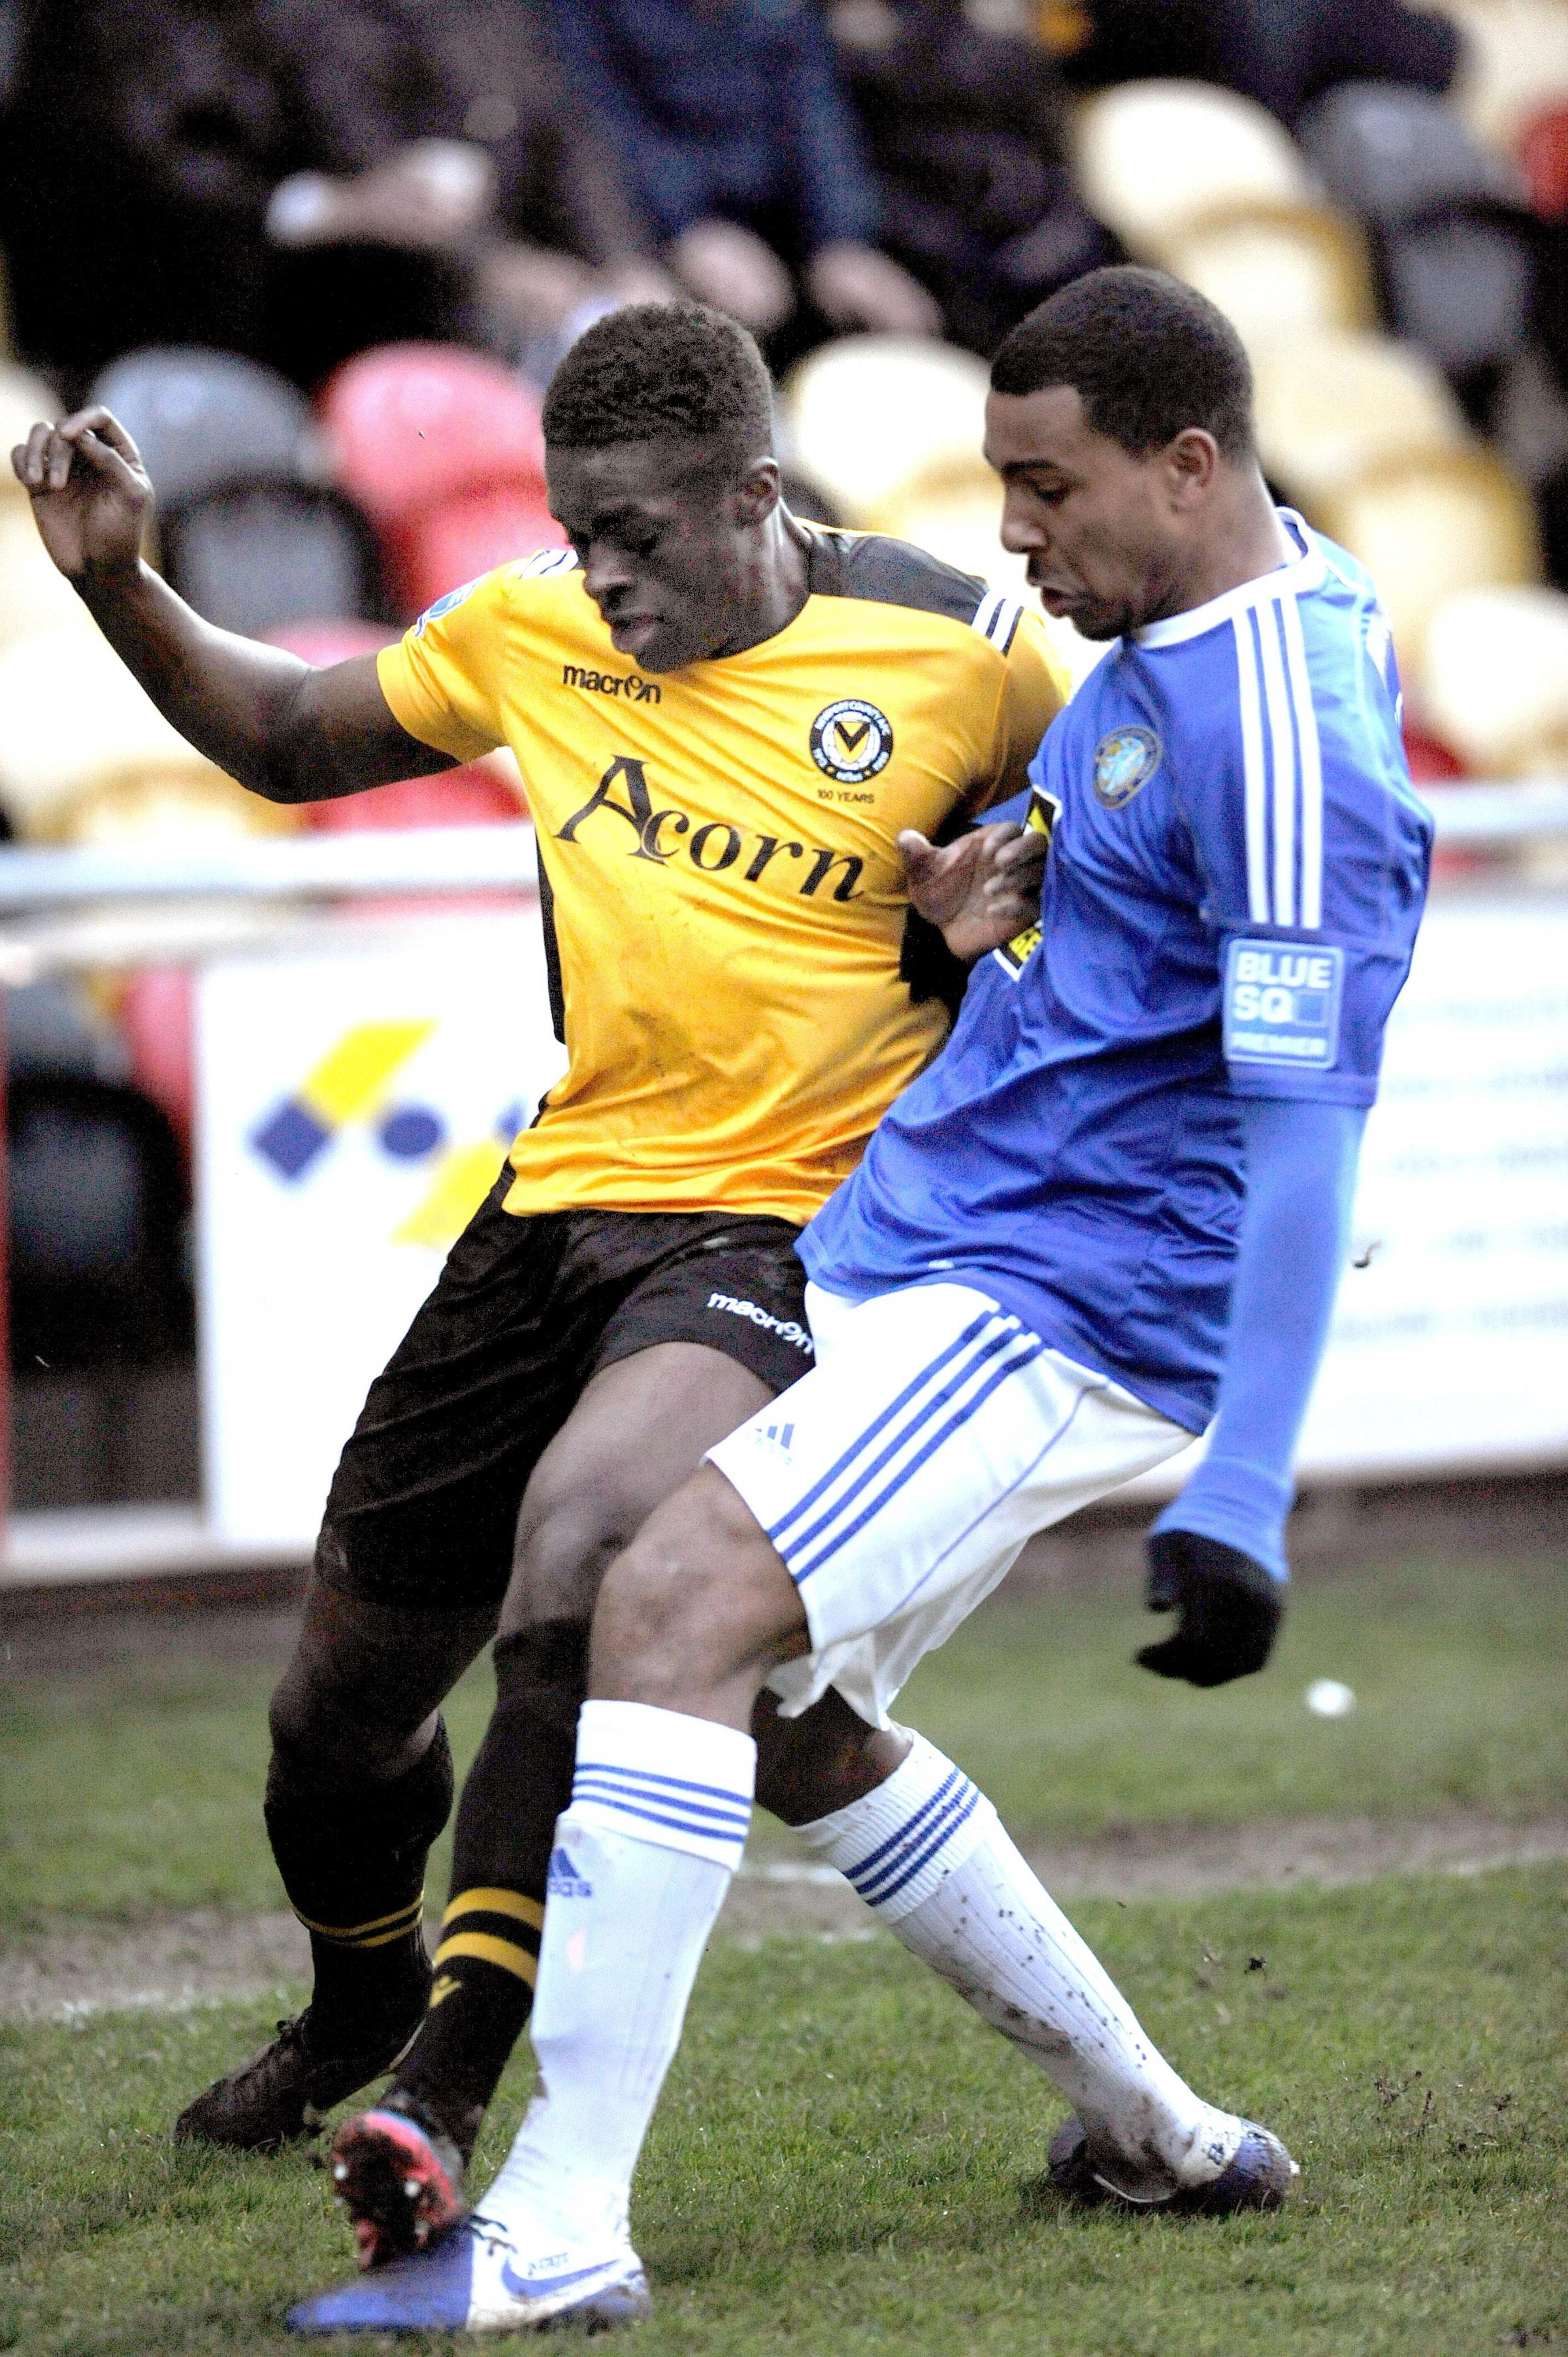 SWA MIKE LEWIS 11 4 13 REPORTER.NEWPORT COUNTY V MACCLESFIELD TOWN.NEWPORT COUNTY'S MICHAEL BOATENG IN THE THICK OF IT. (7241749)